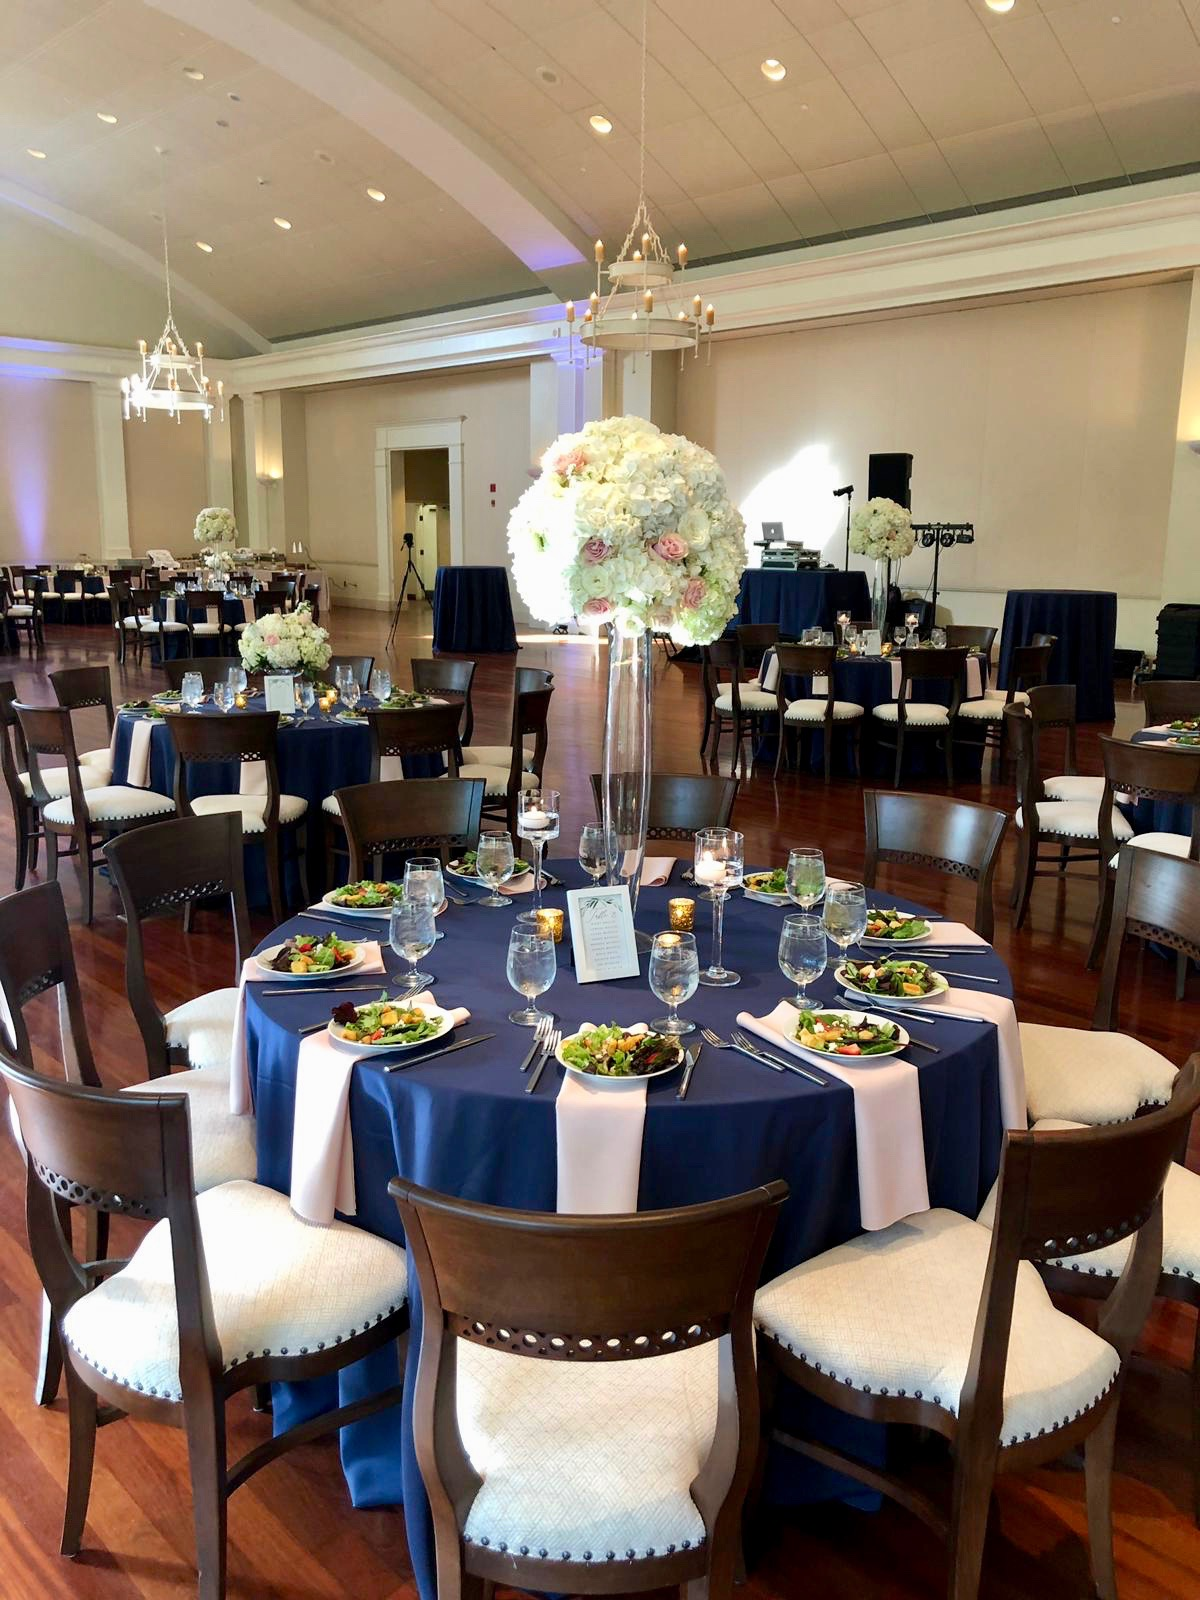 Reception Venue:  The Atlanta History Center  Catering by  Low Country Catering  Flowers by  On Occasions of Atlanta  Linens by  BBJ Linens